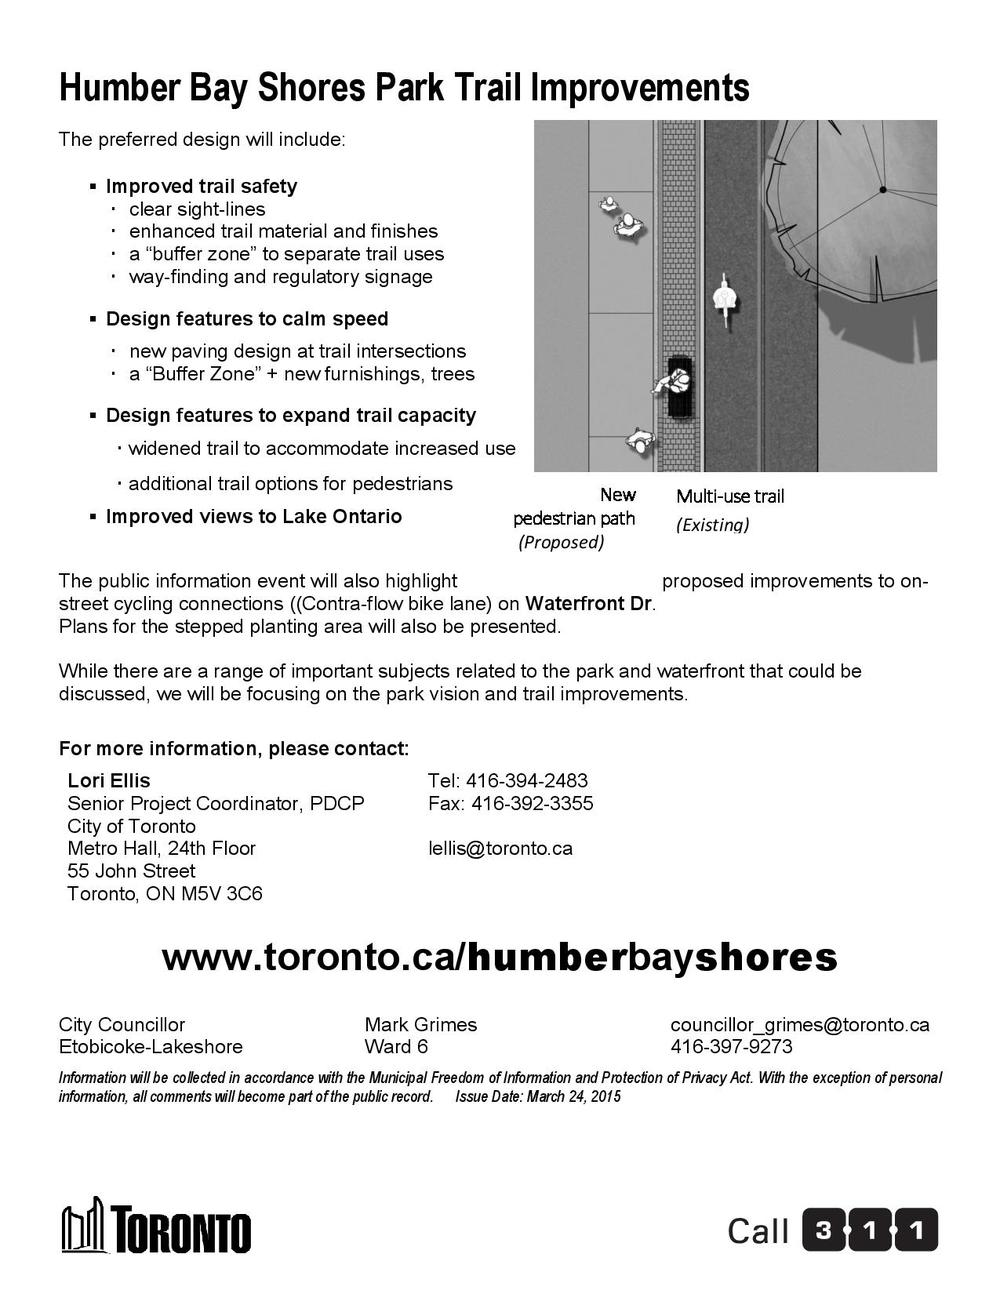 03 16 15 Humber - Public Event Flyer LE-page-002.jpg